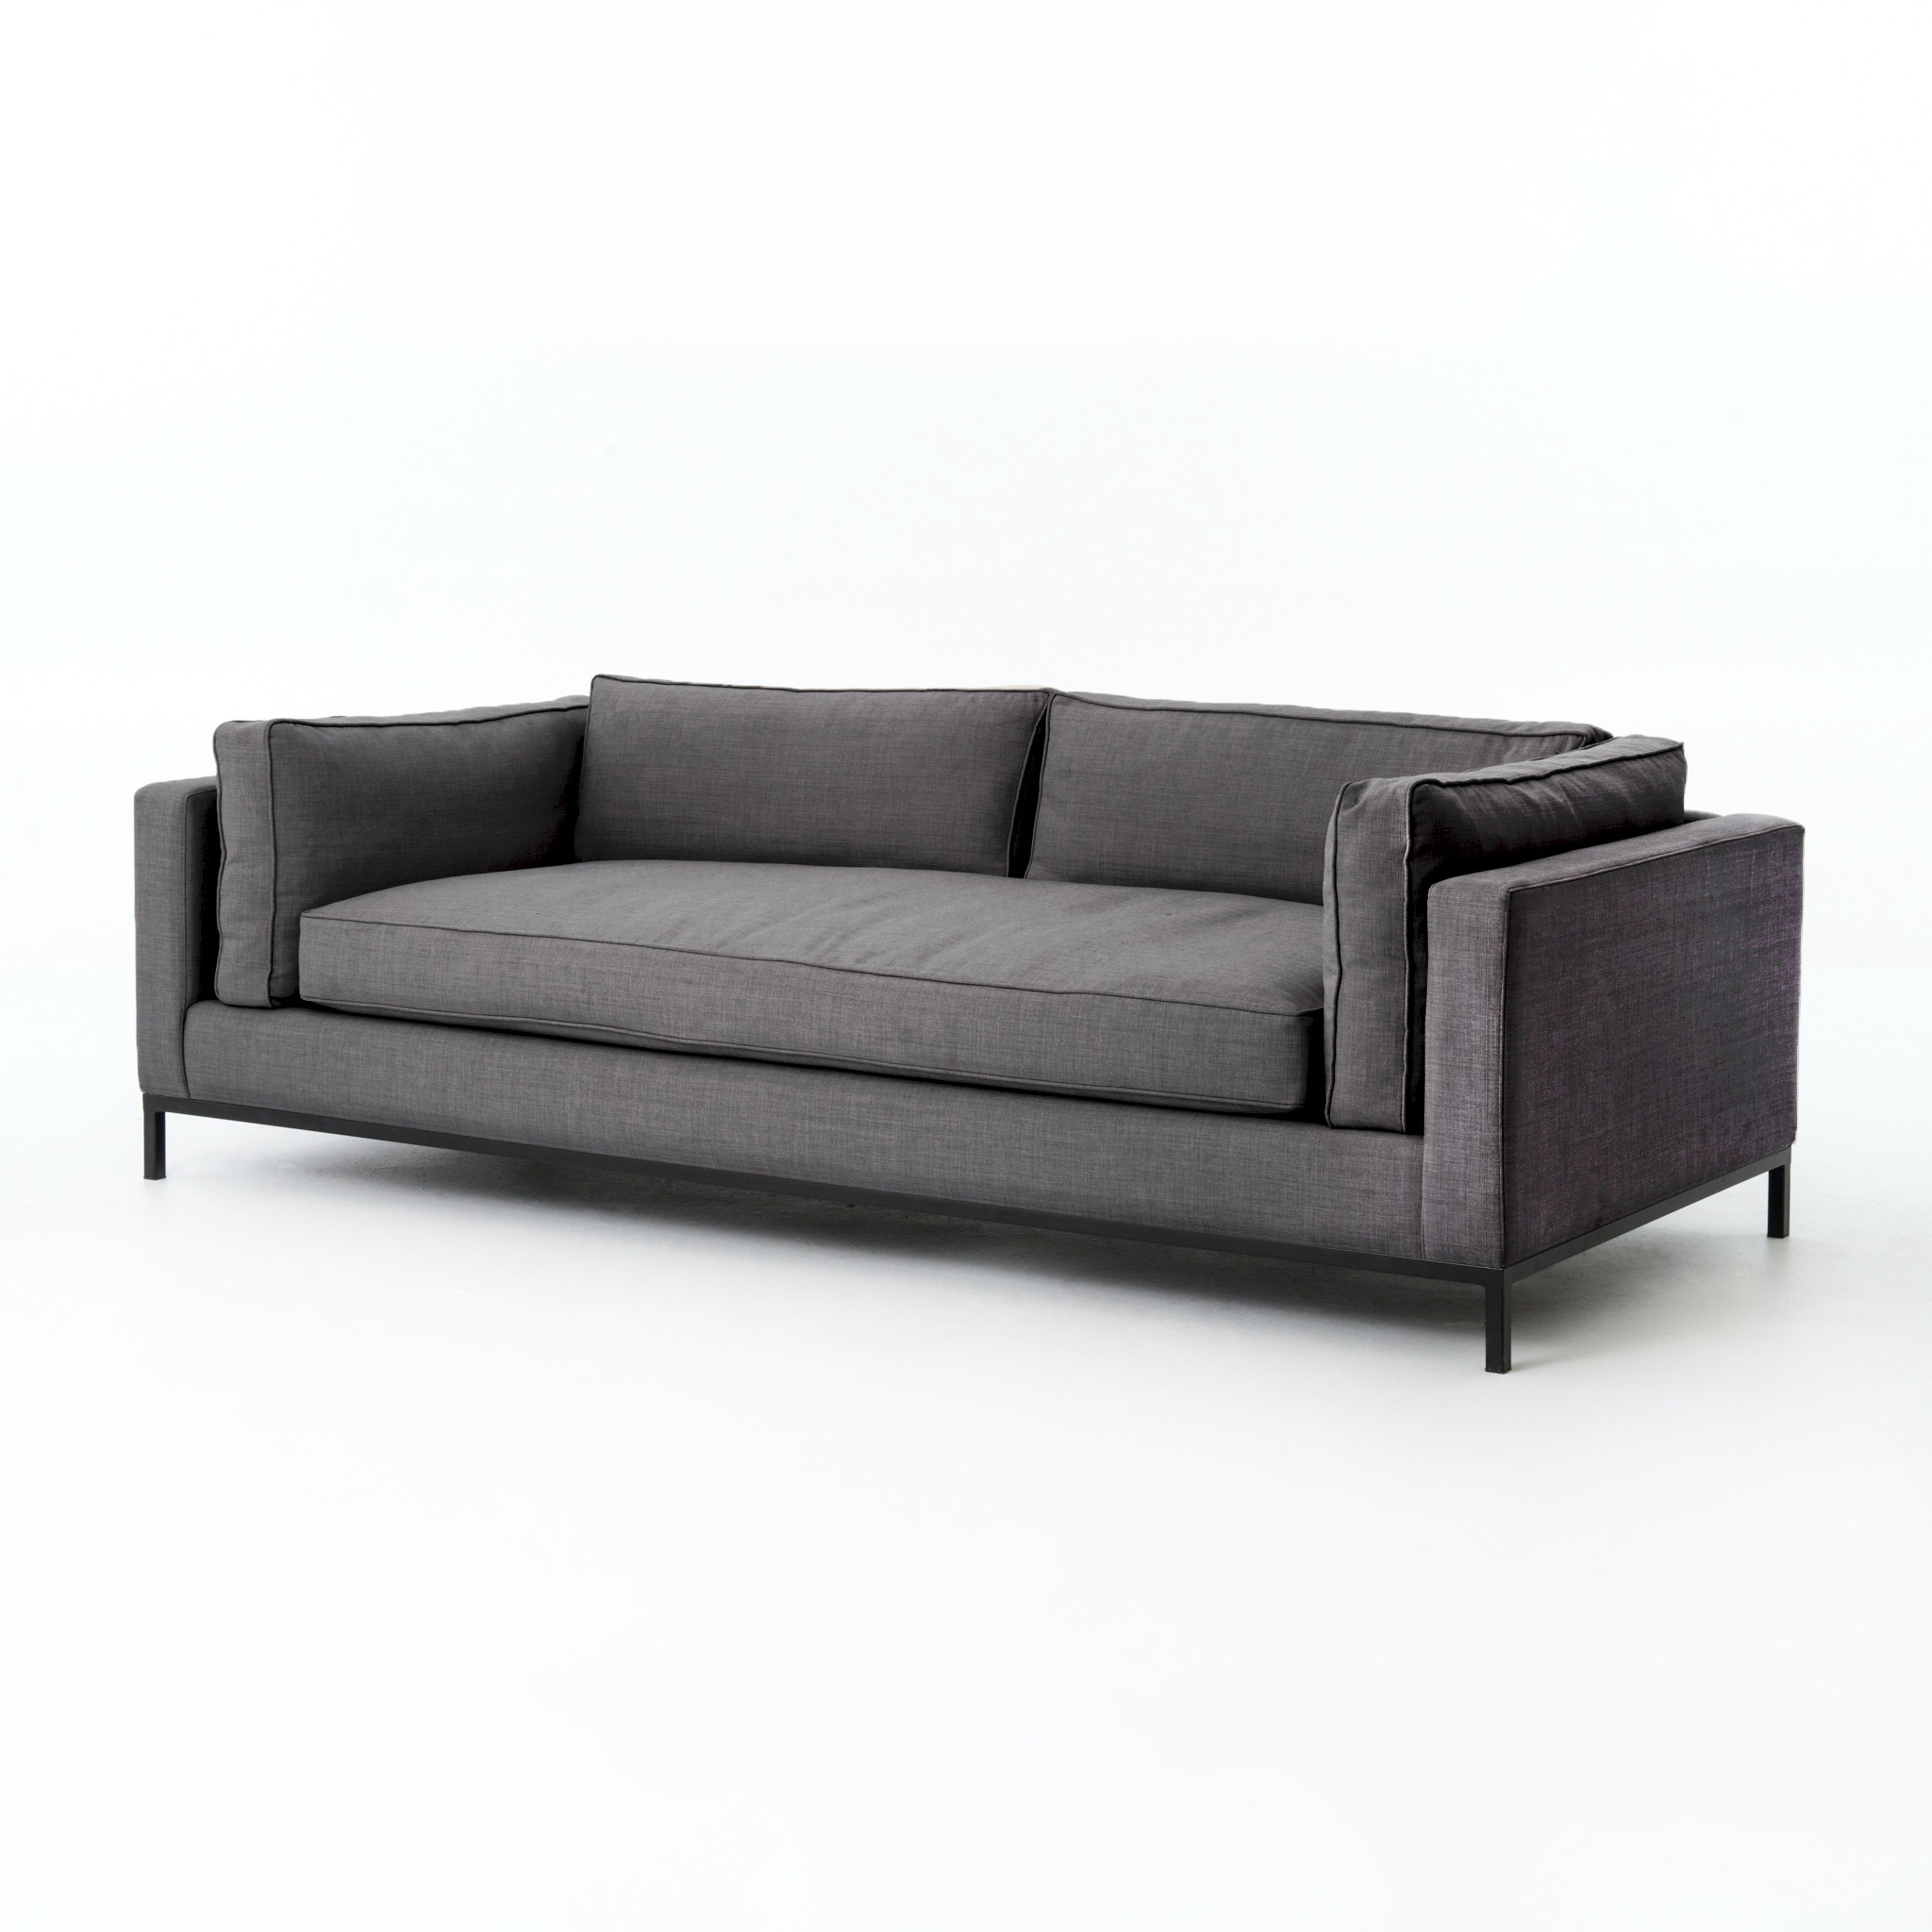 Four Hands Furniture UATR 002 BCH Living Room GRAMMERCY SOFA